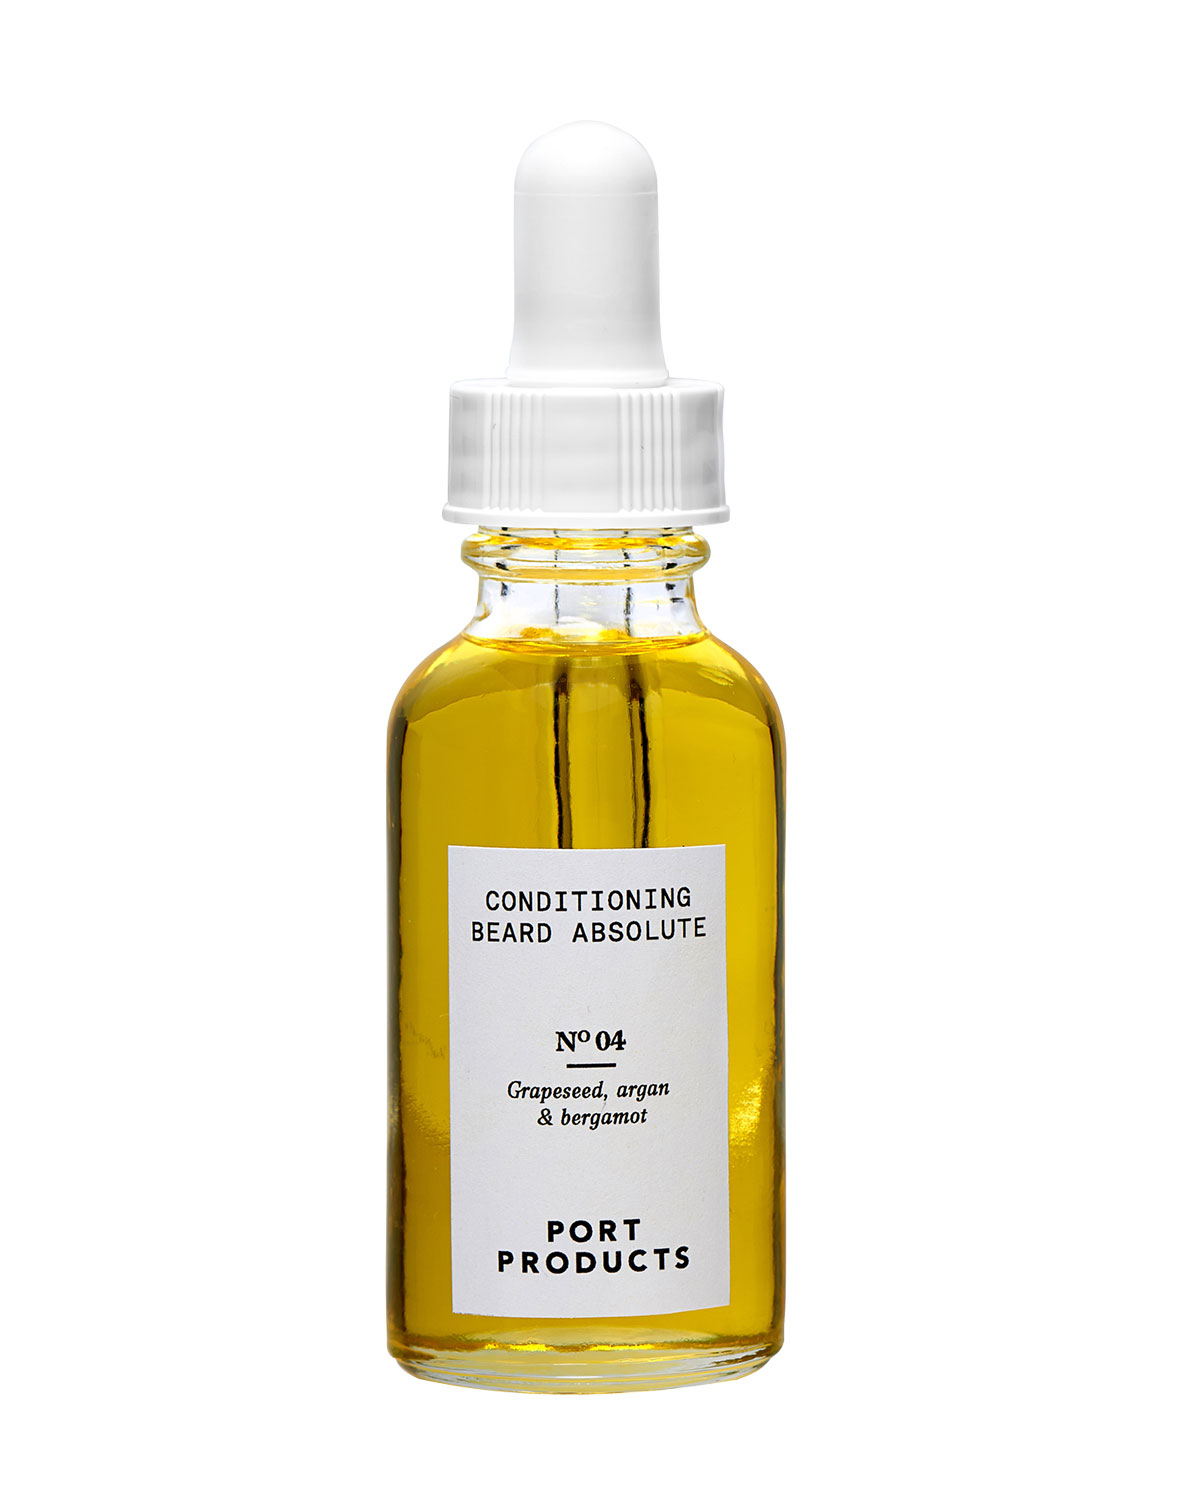 Port Products 1 oz. Port Products Conditioning Beard Absolute